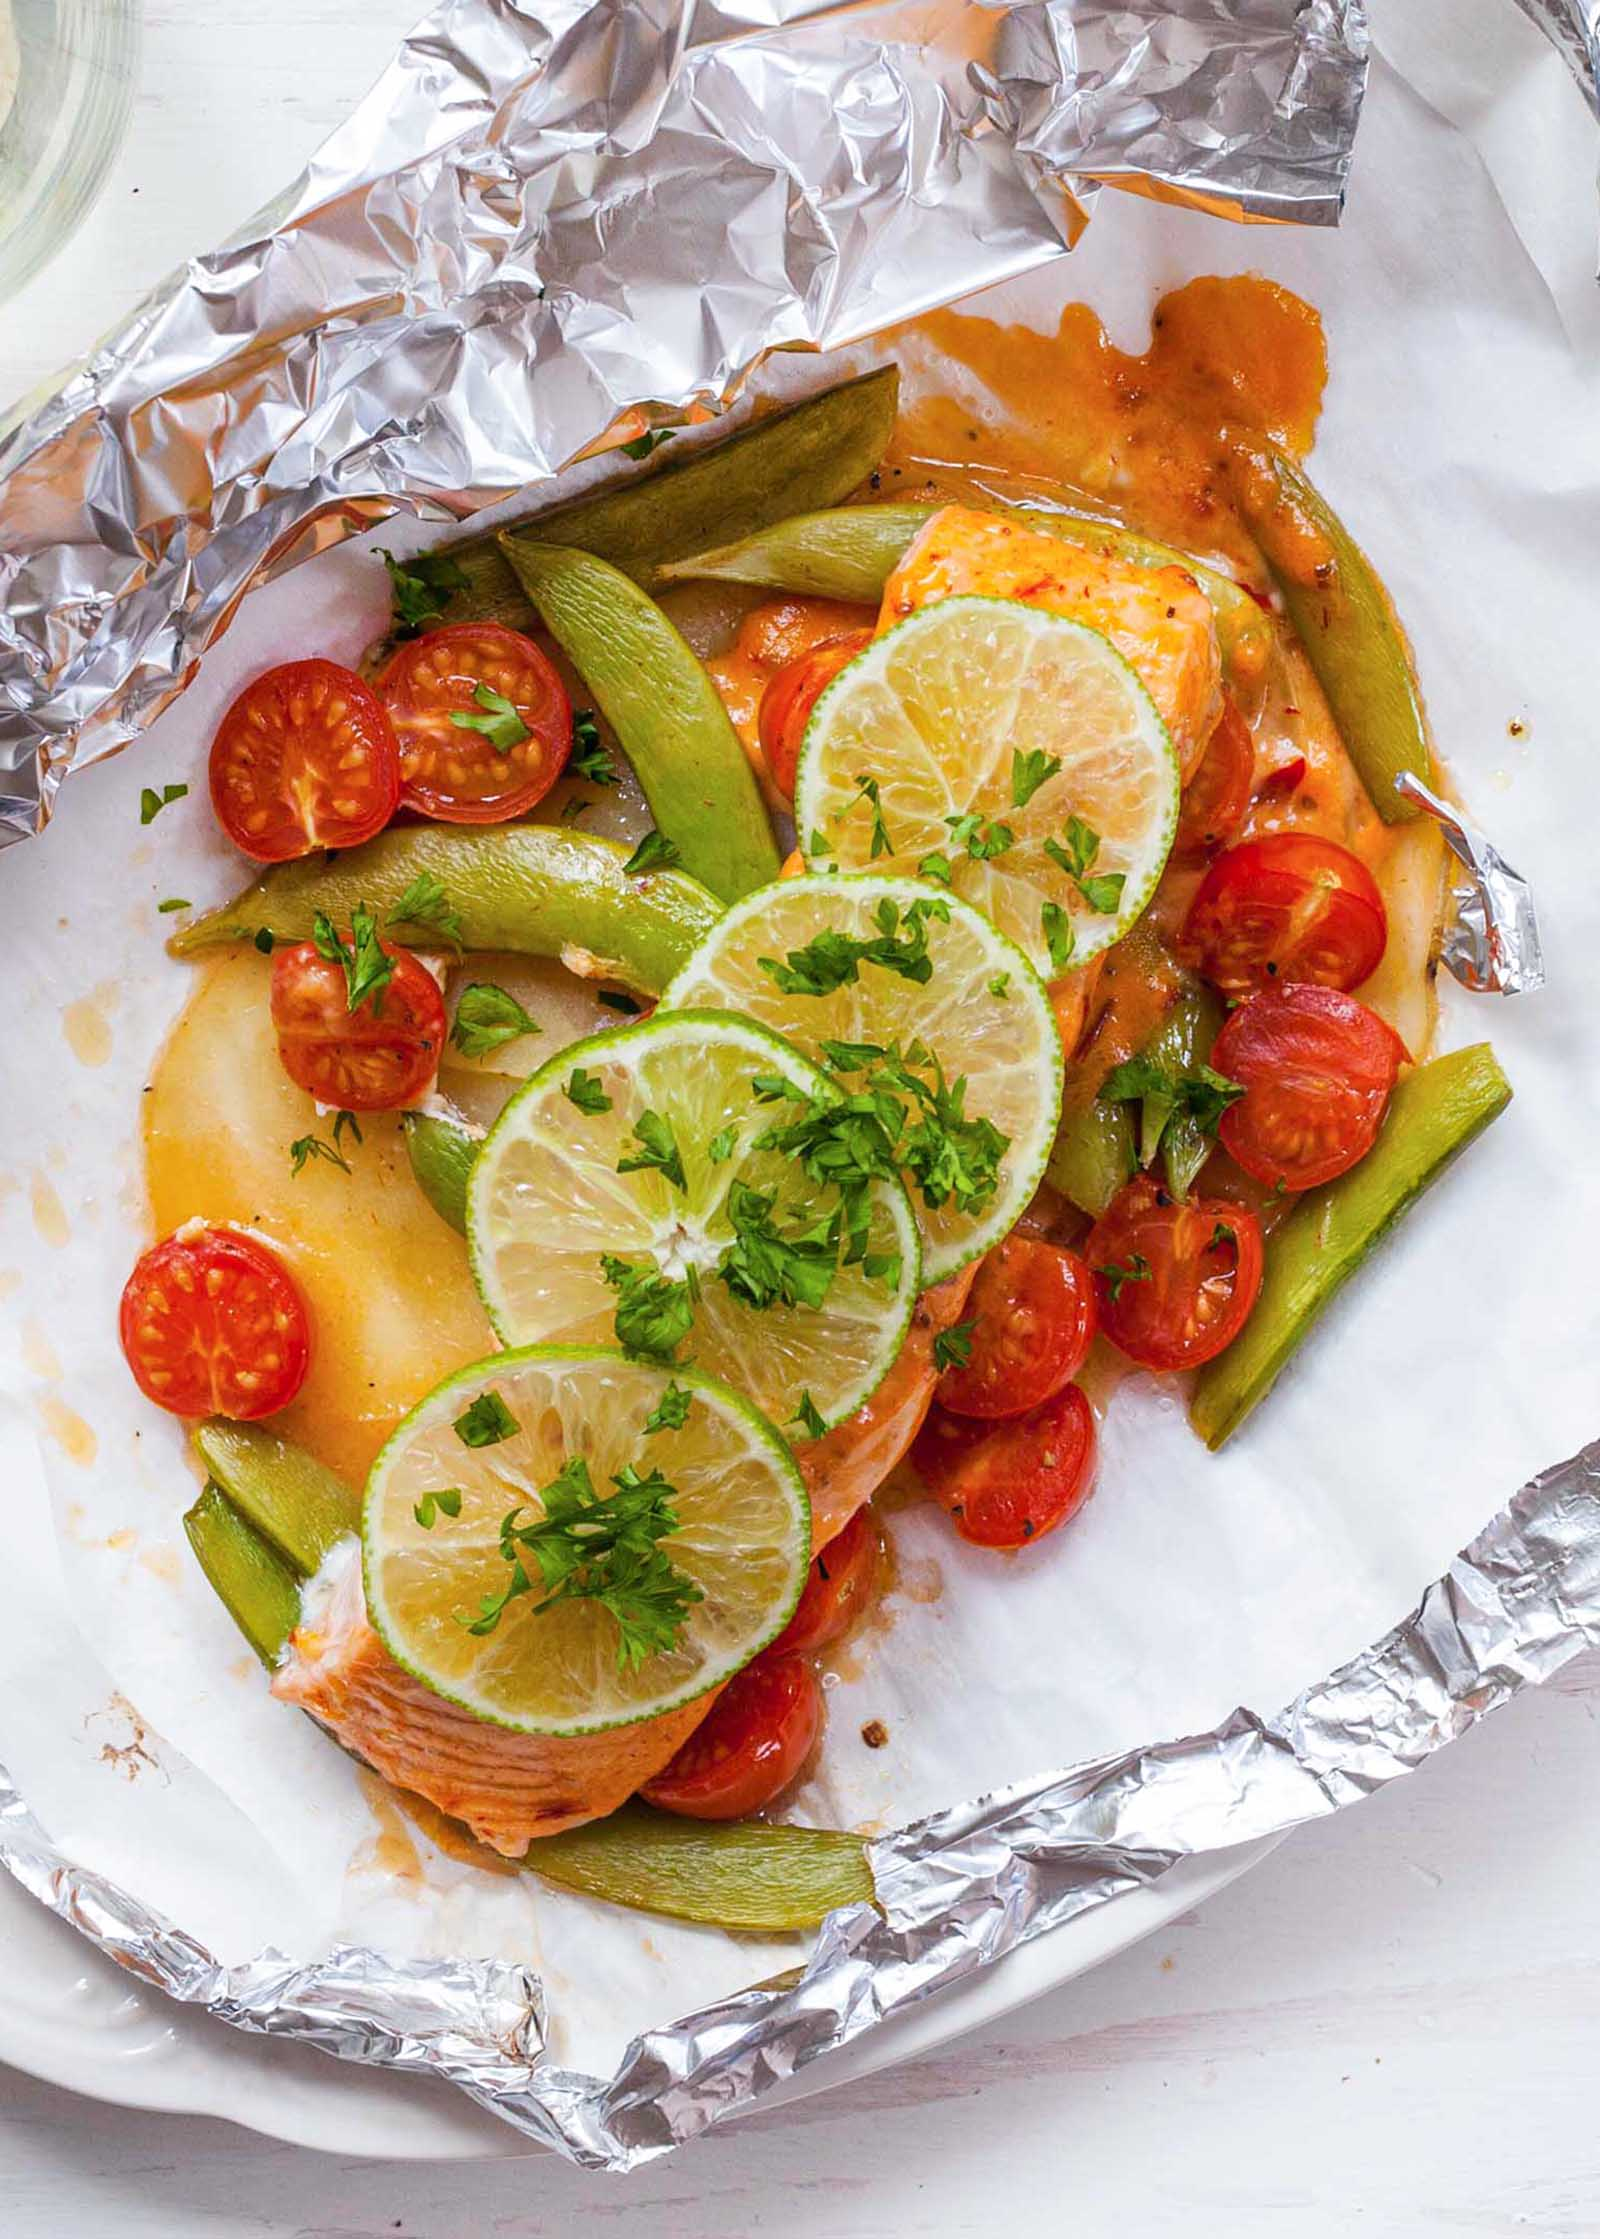 Top view of the best healthy salmon. A fillet is in the middle of an open foil packet with grape tomatoes, sugar snap peas, and sauce around it. Thinly sliced limes and chopped cilantro are on top of the salmon.